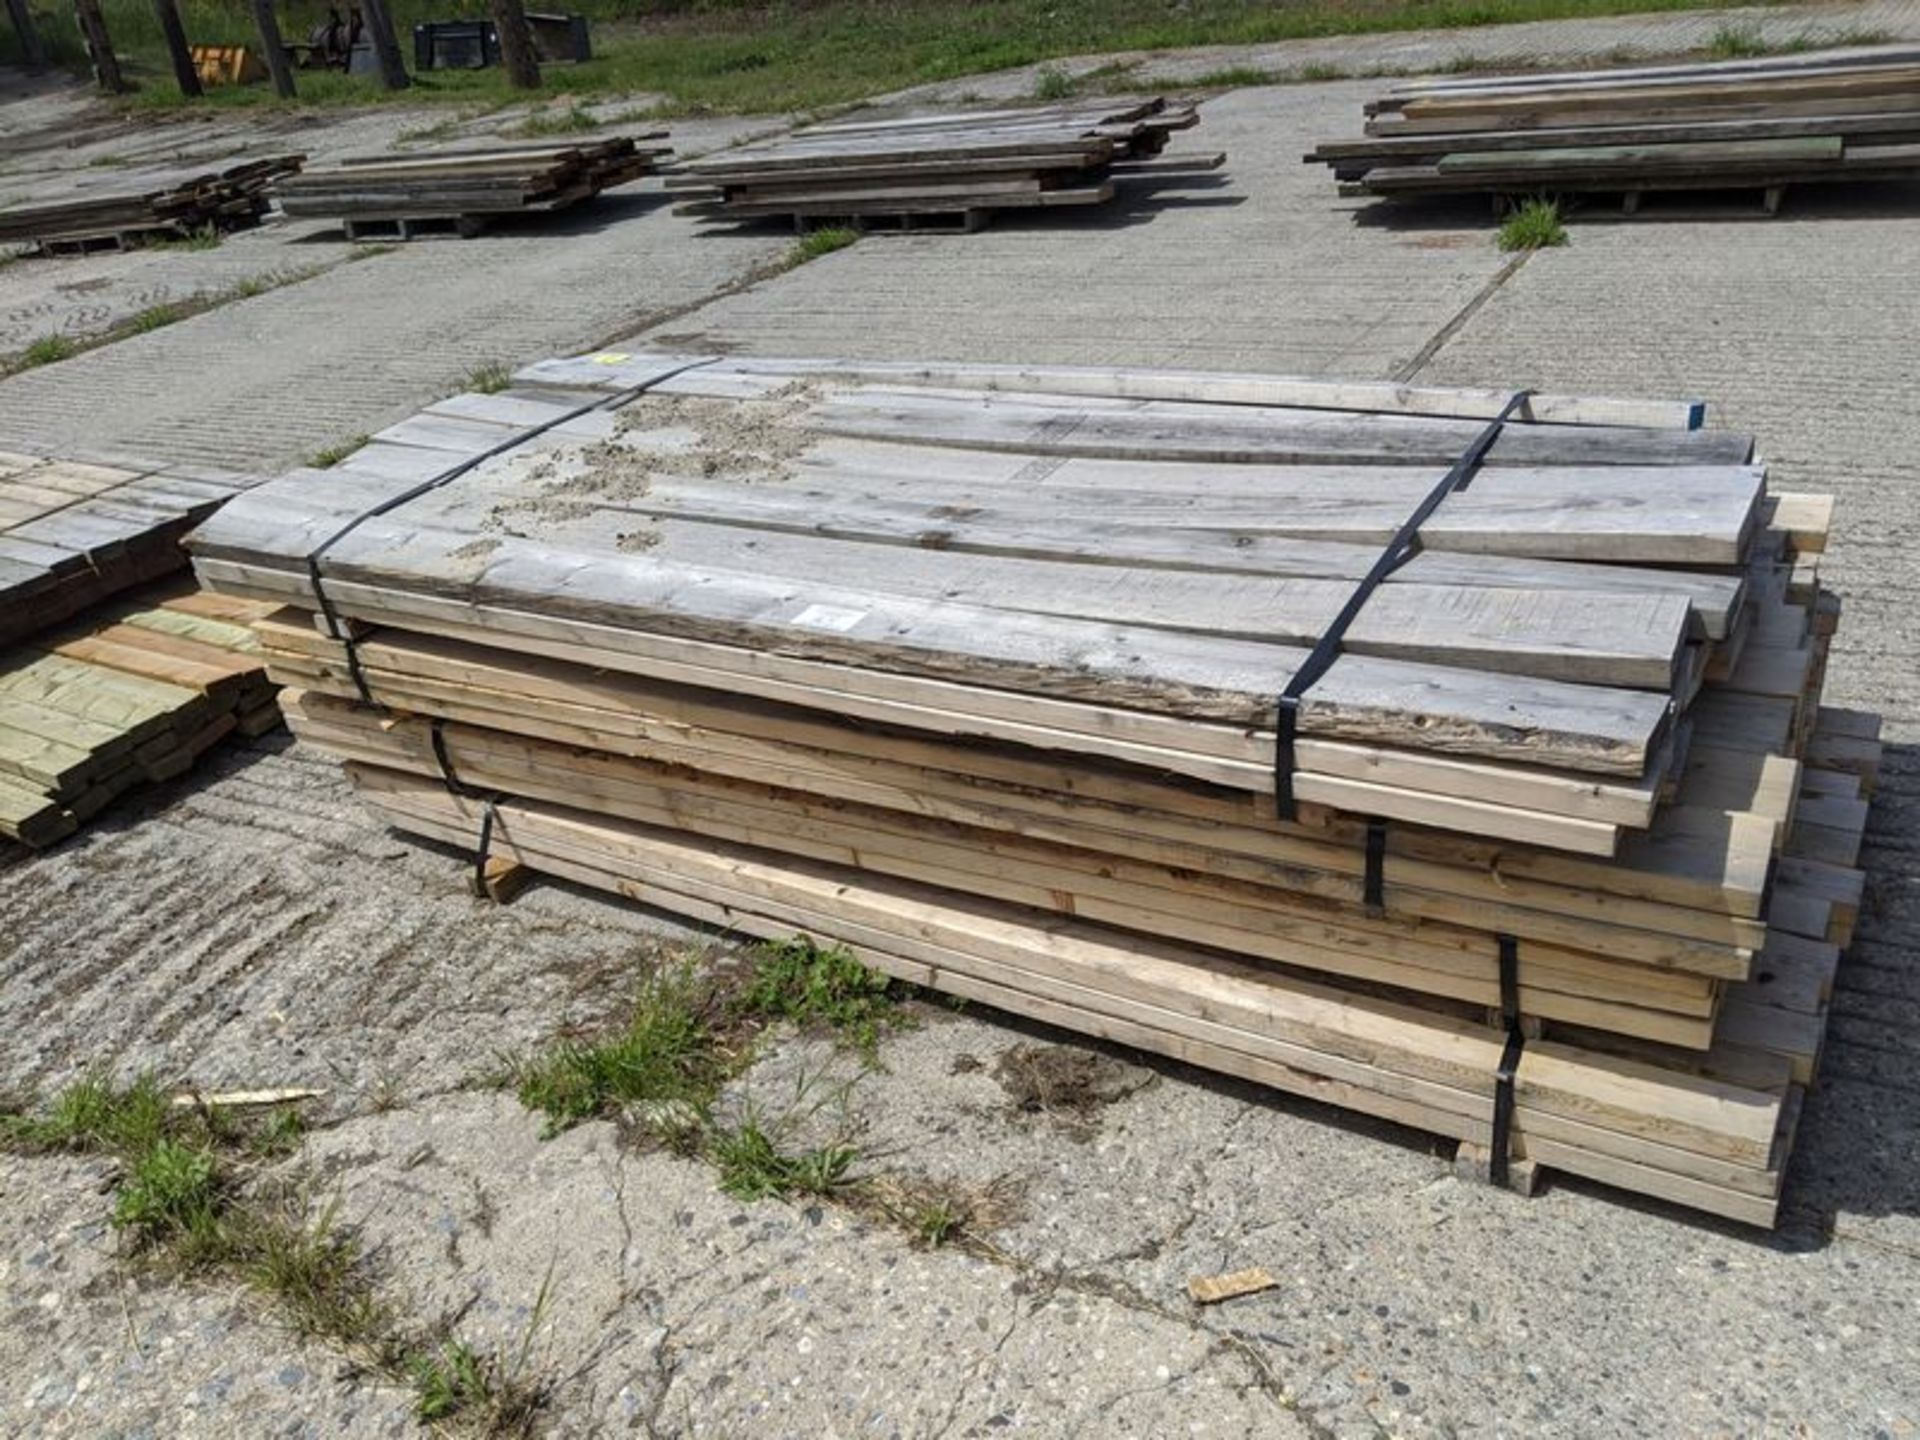 Lot 25 - 2 Slings 2 x 4, 2 Slings 2 x 6, Approx. 8 ft